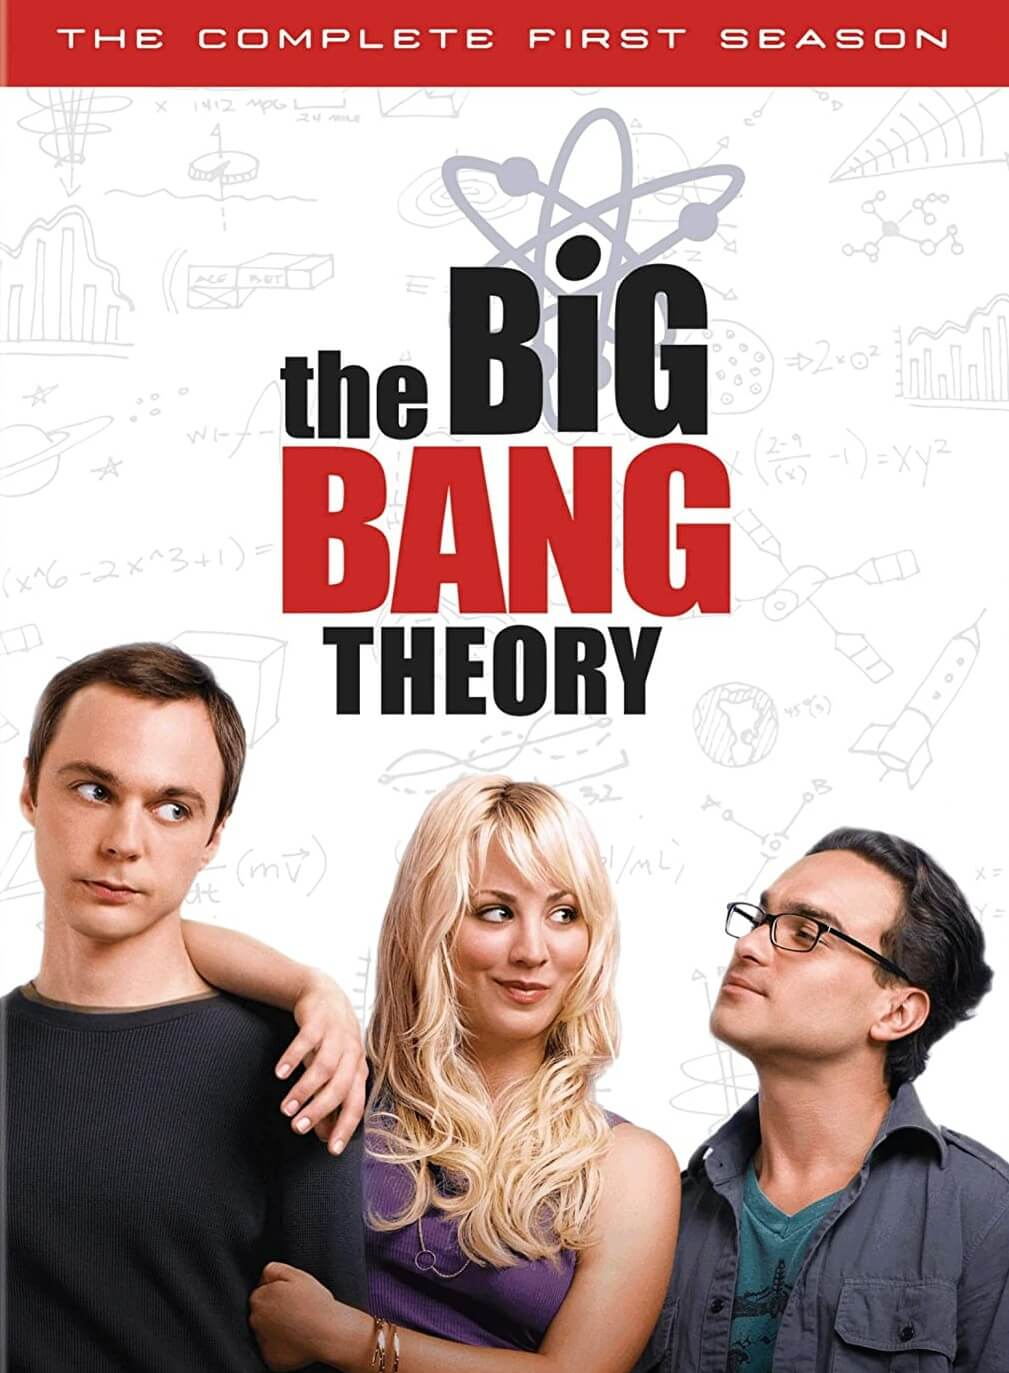 The Big Bang Theory S01 E06